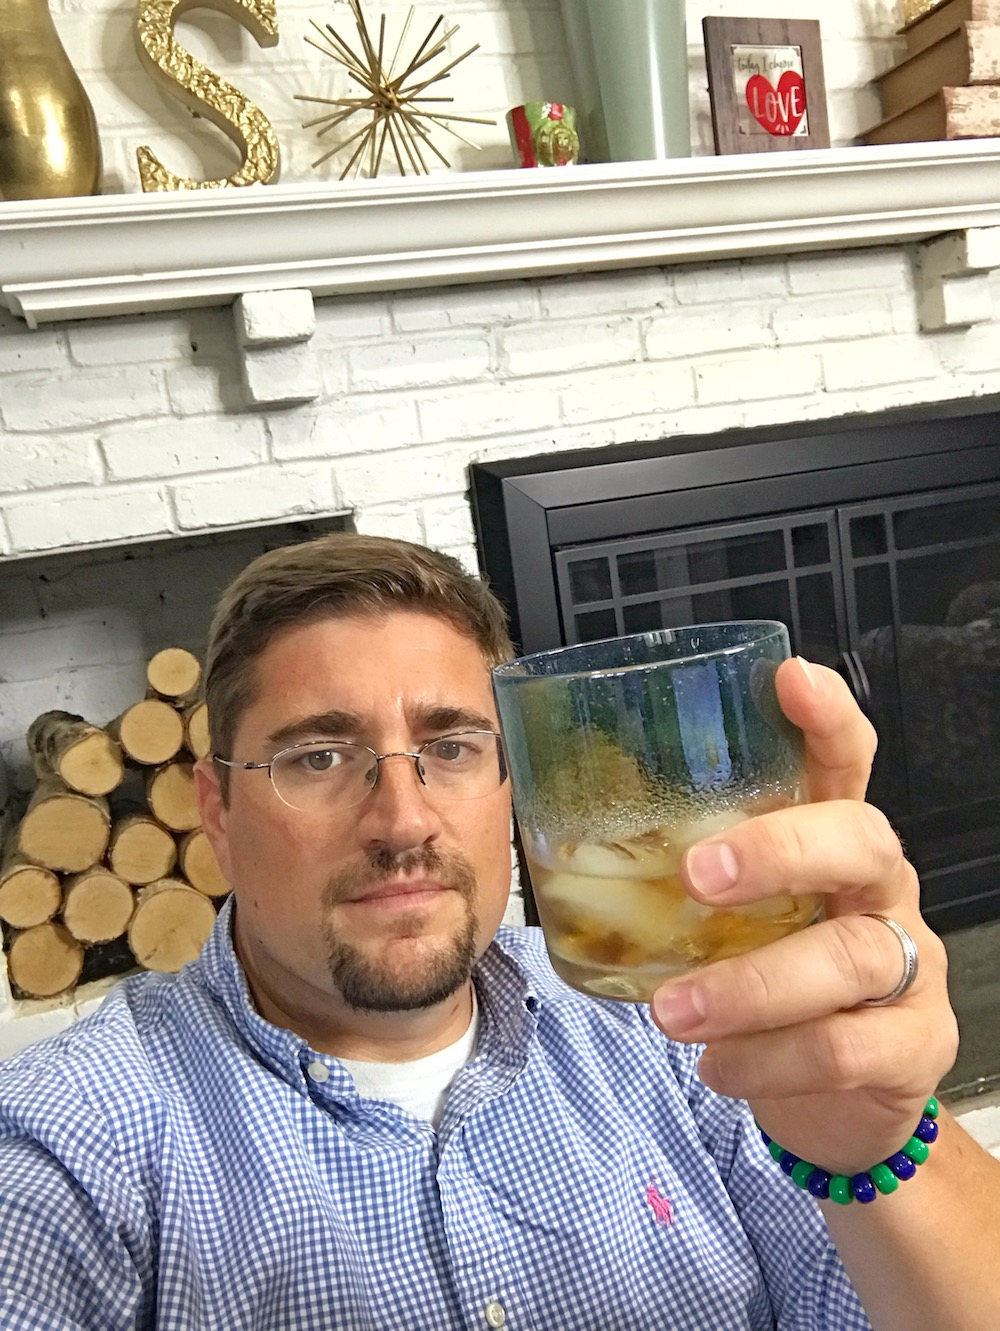 man holding cocktail glass drinkware from JFR Glass